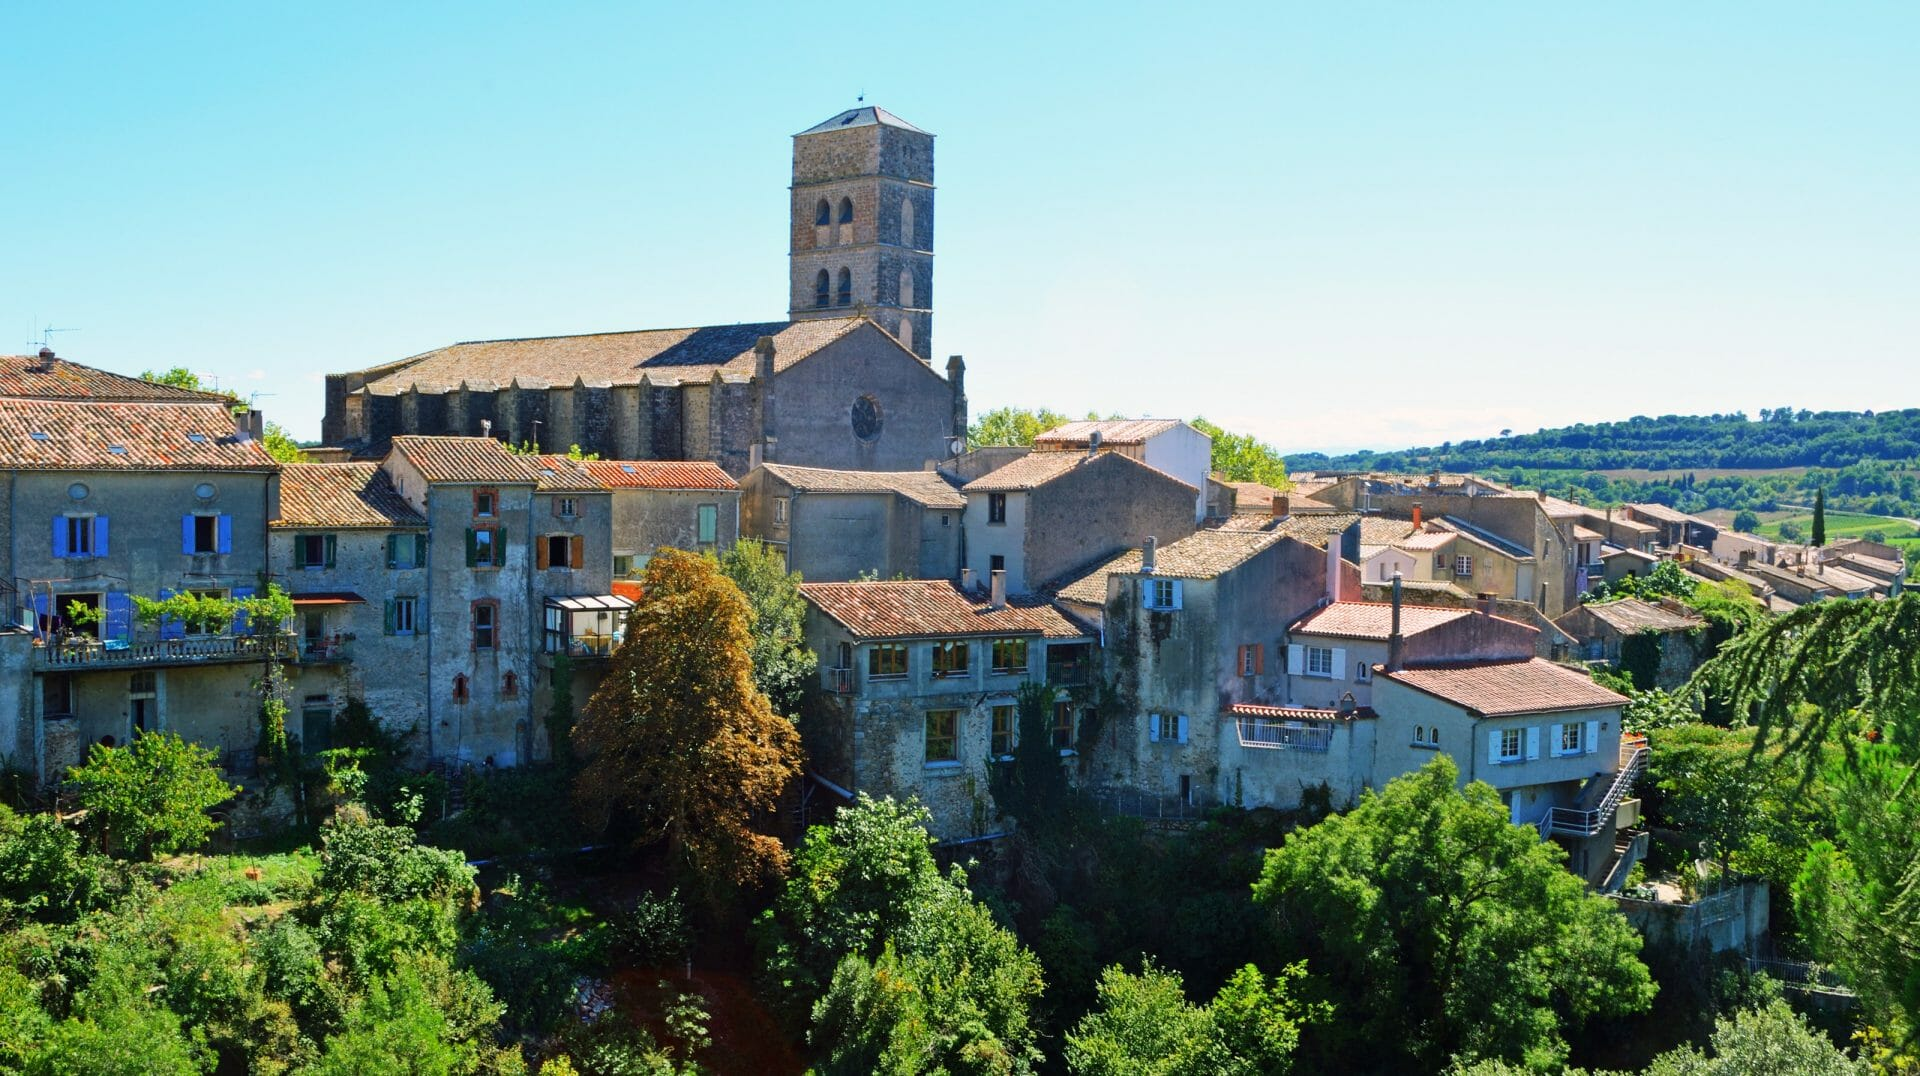 Aviewofthevillageof MontolieuAudeLanguedoc RoussillonFrance.Treesvalleyientienthouses andchurchbelltower.